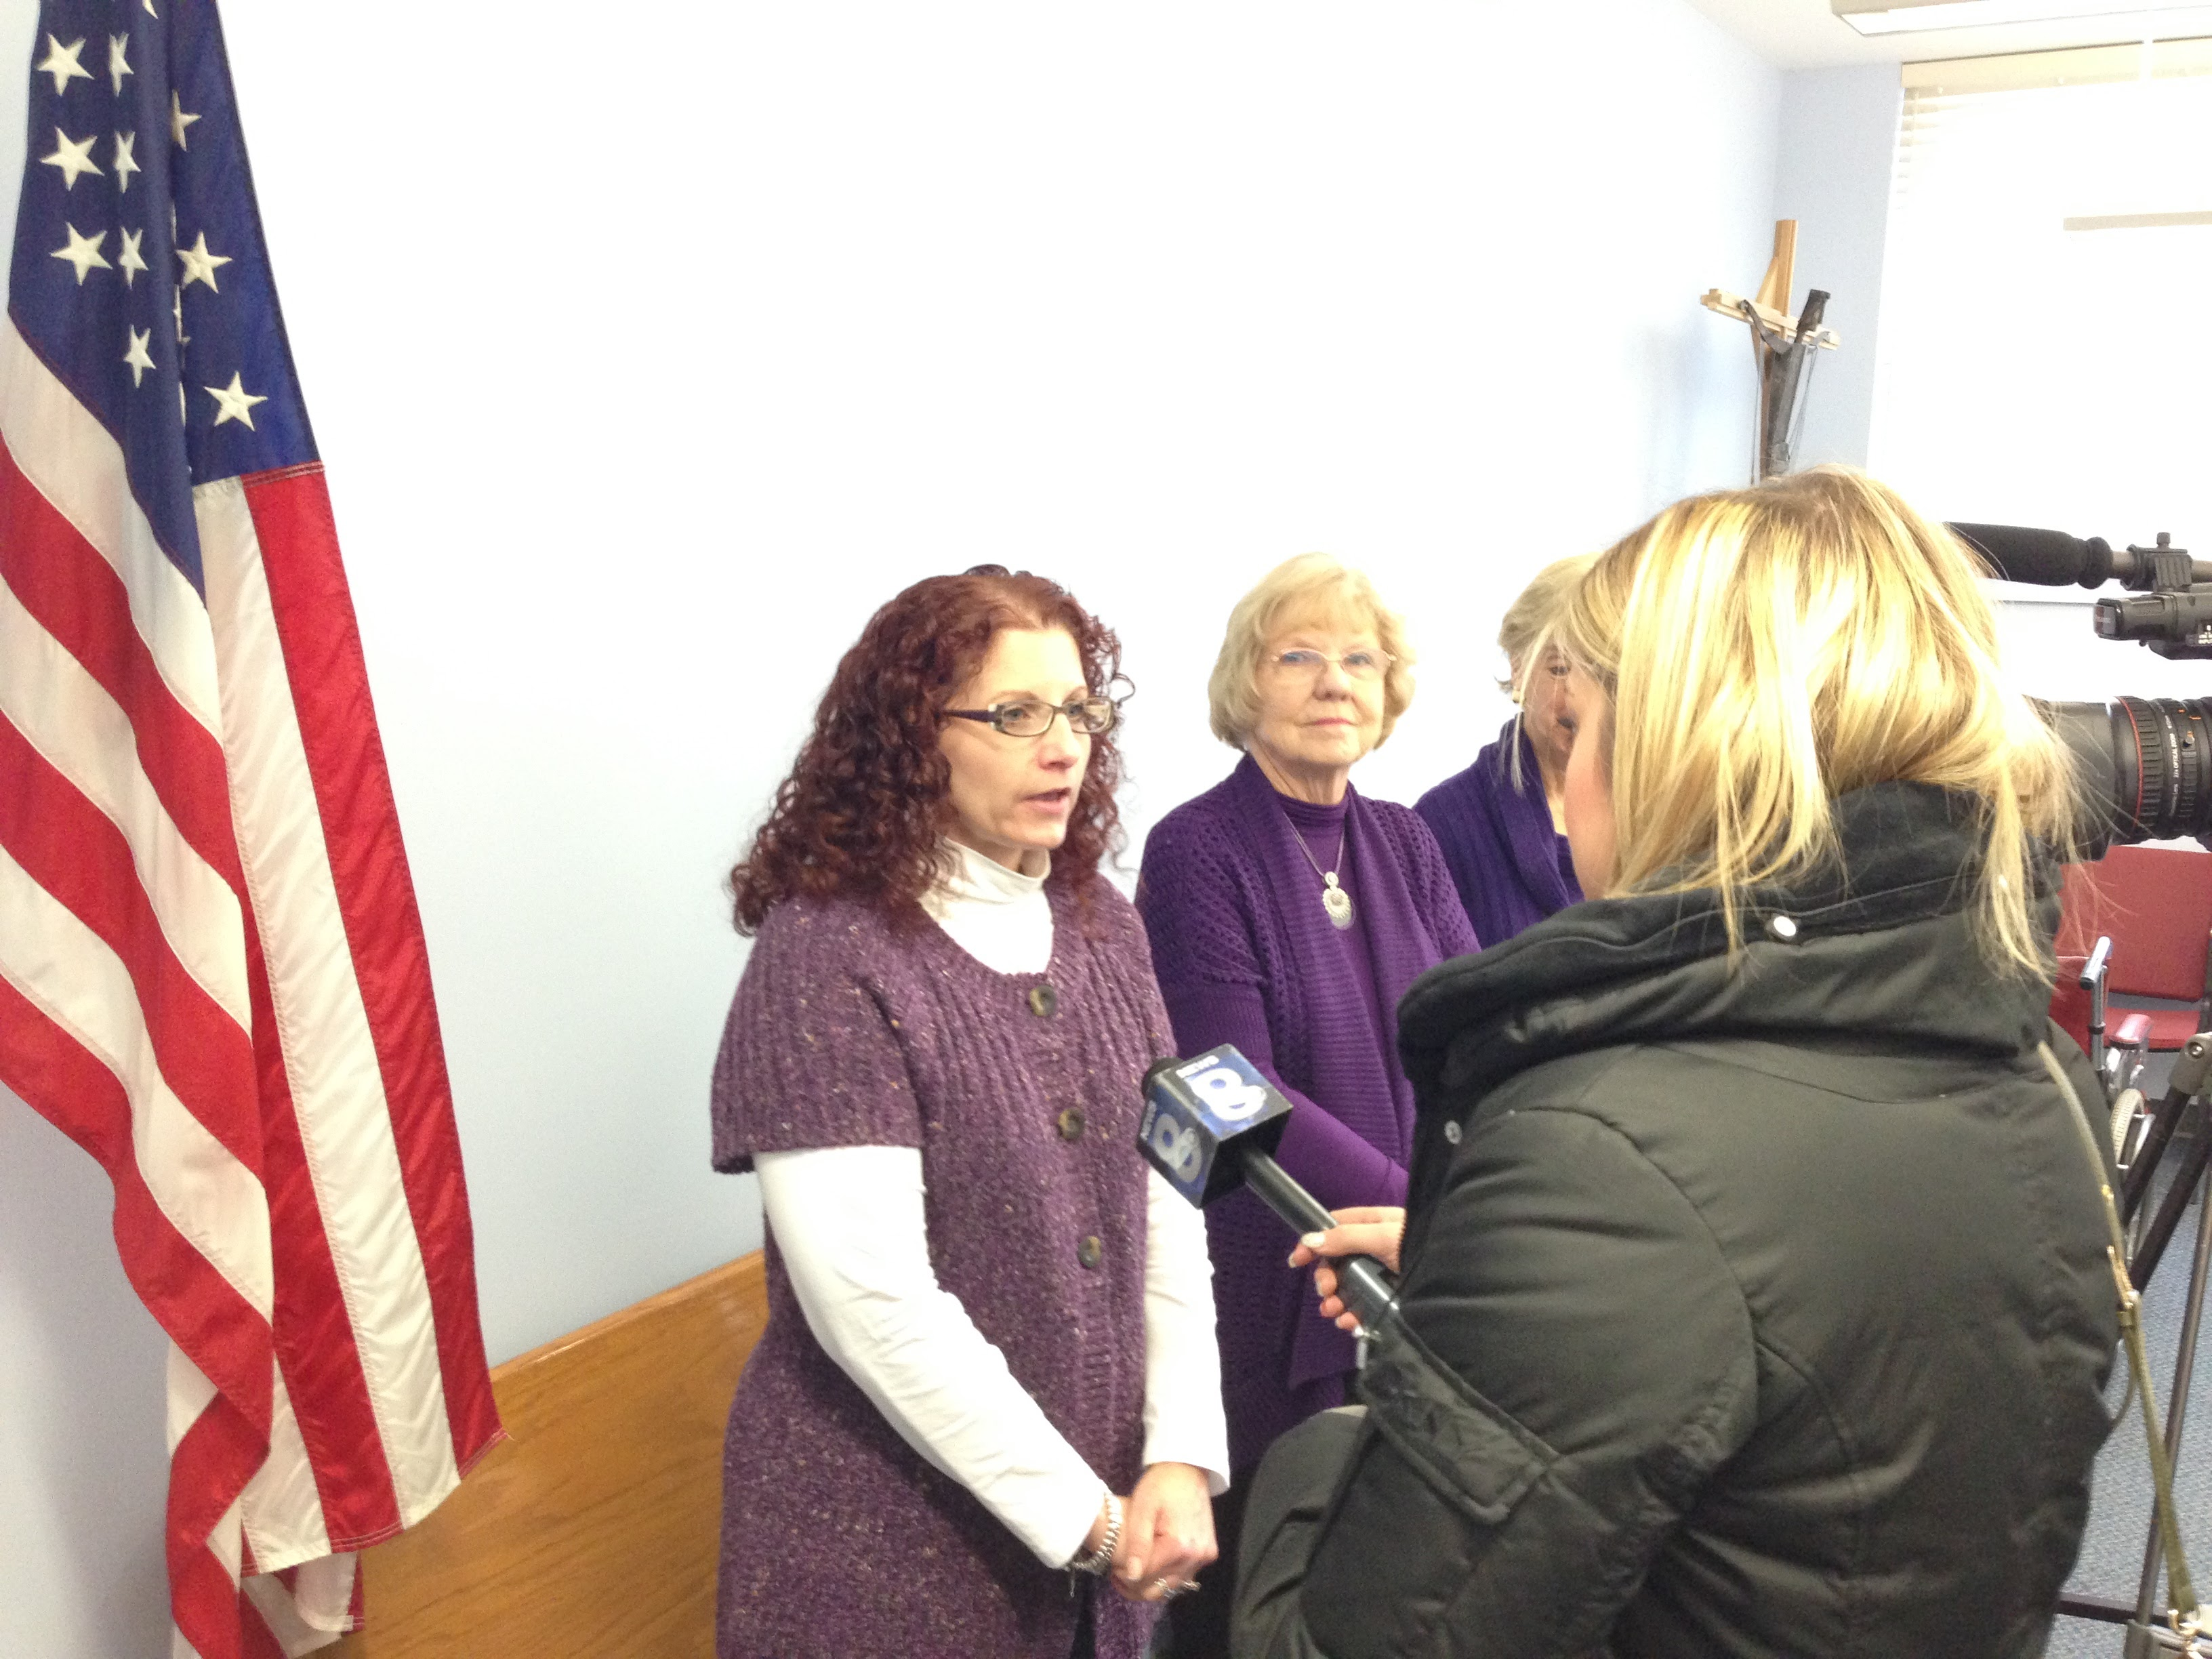 Interview_-_Irondequoit_Public_Libray_-_Tipping_Point_Communications.jpg